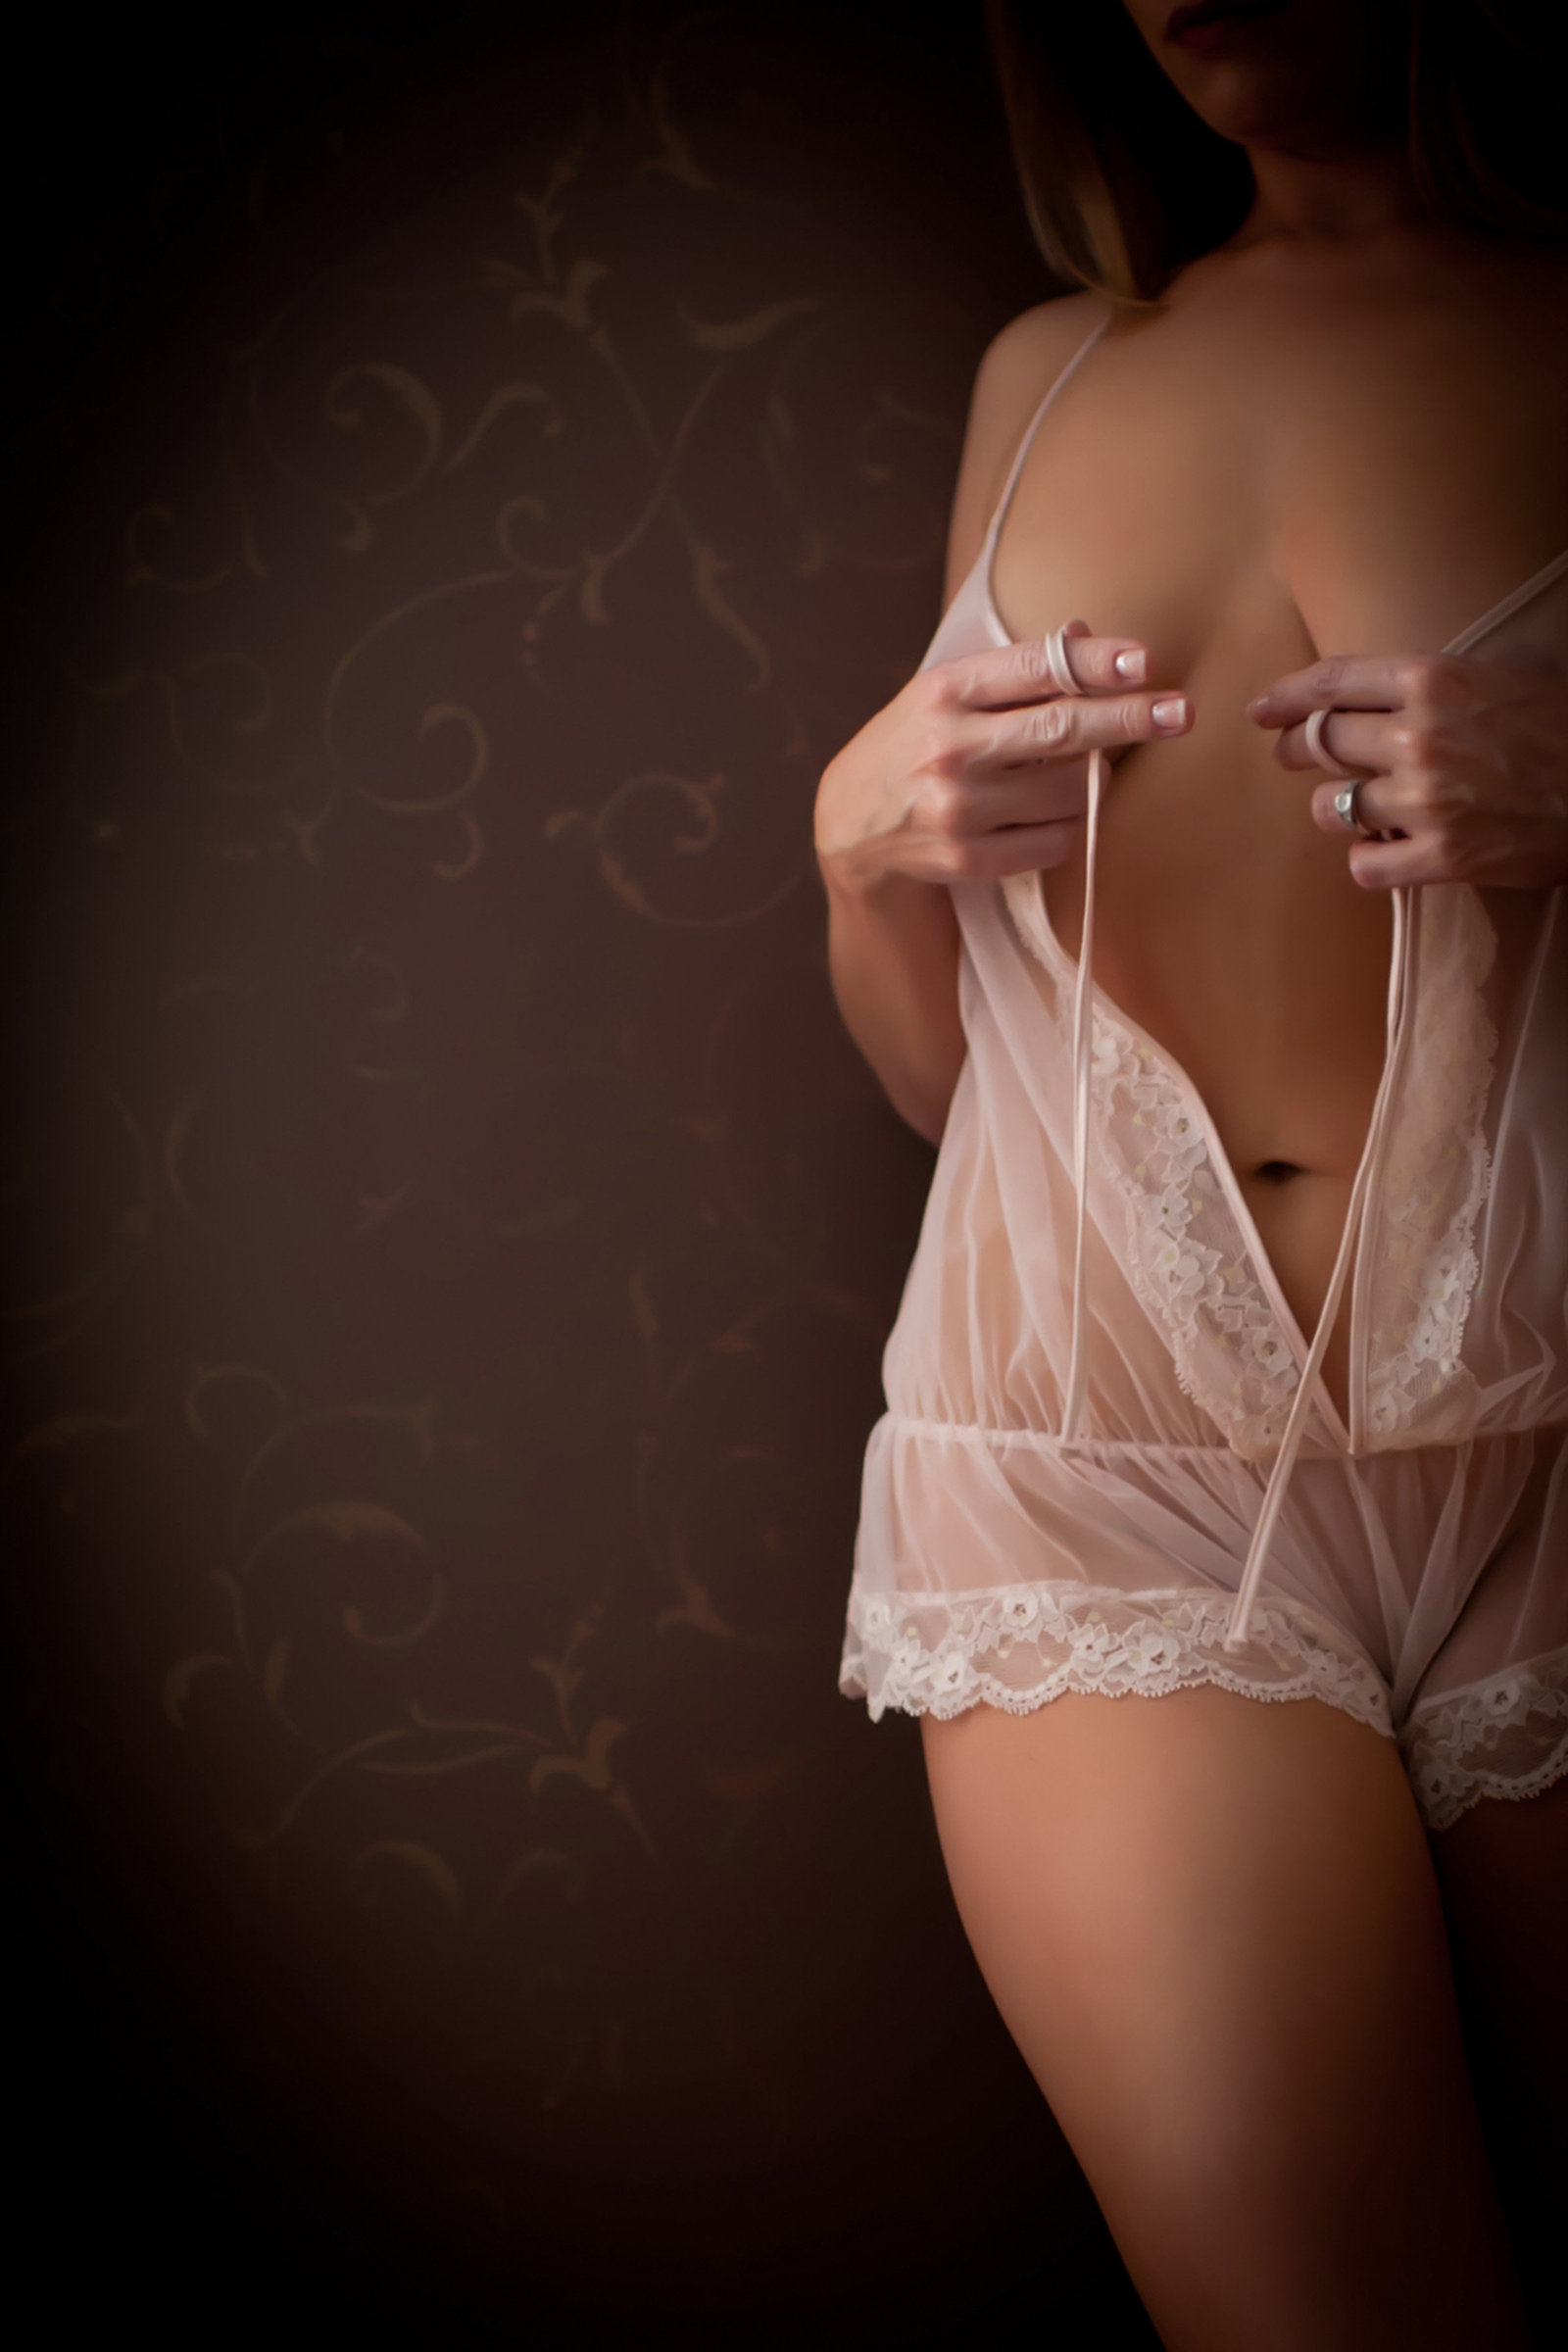 minneapolis-boudoir-photography-001